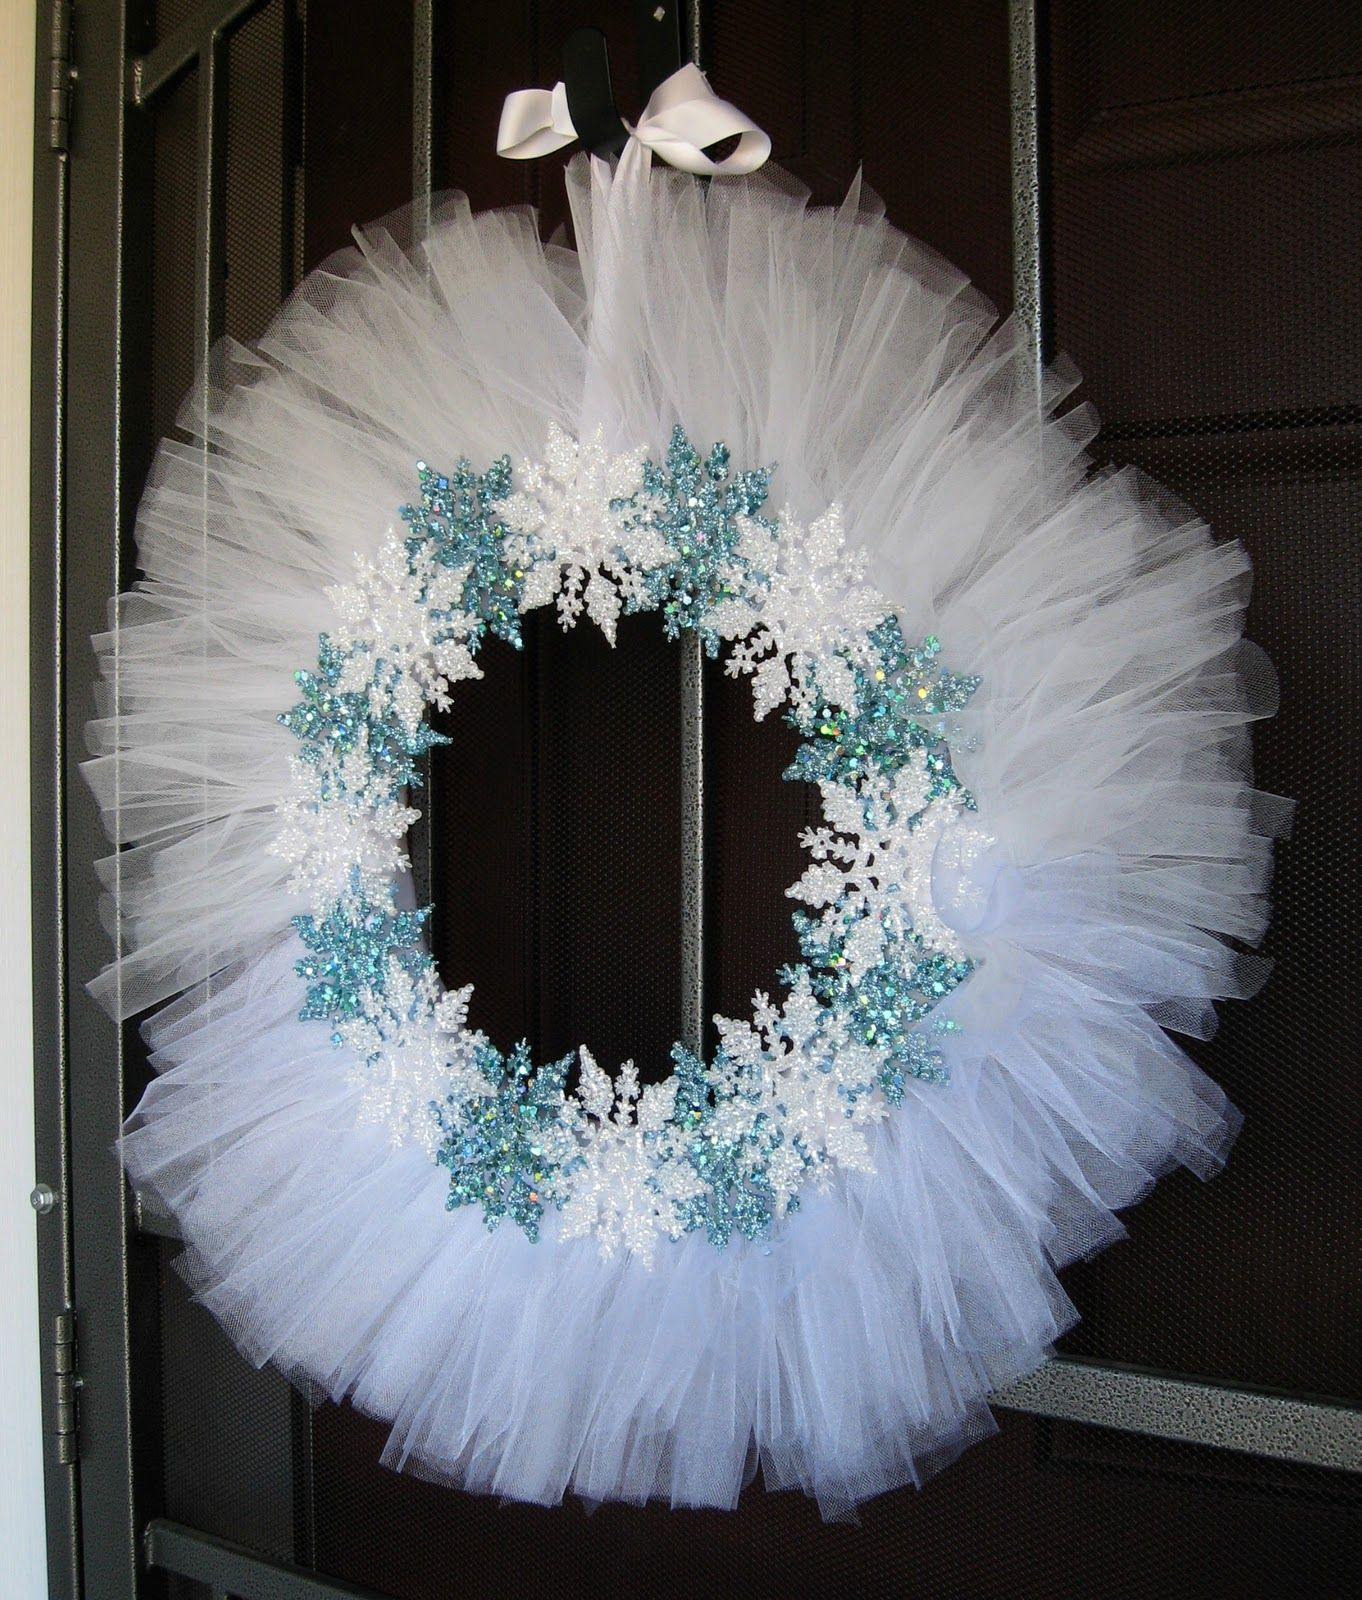 white tulle and  glittery snowflakes